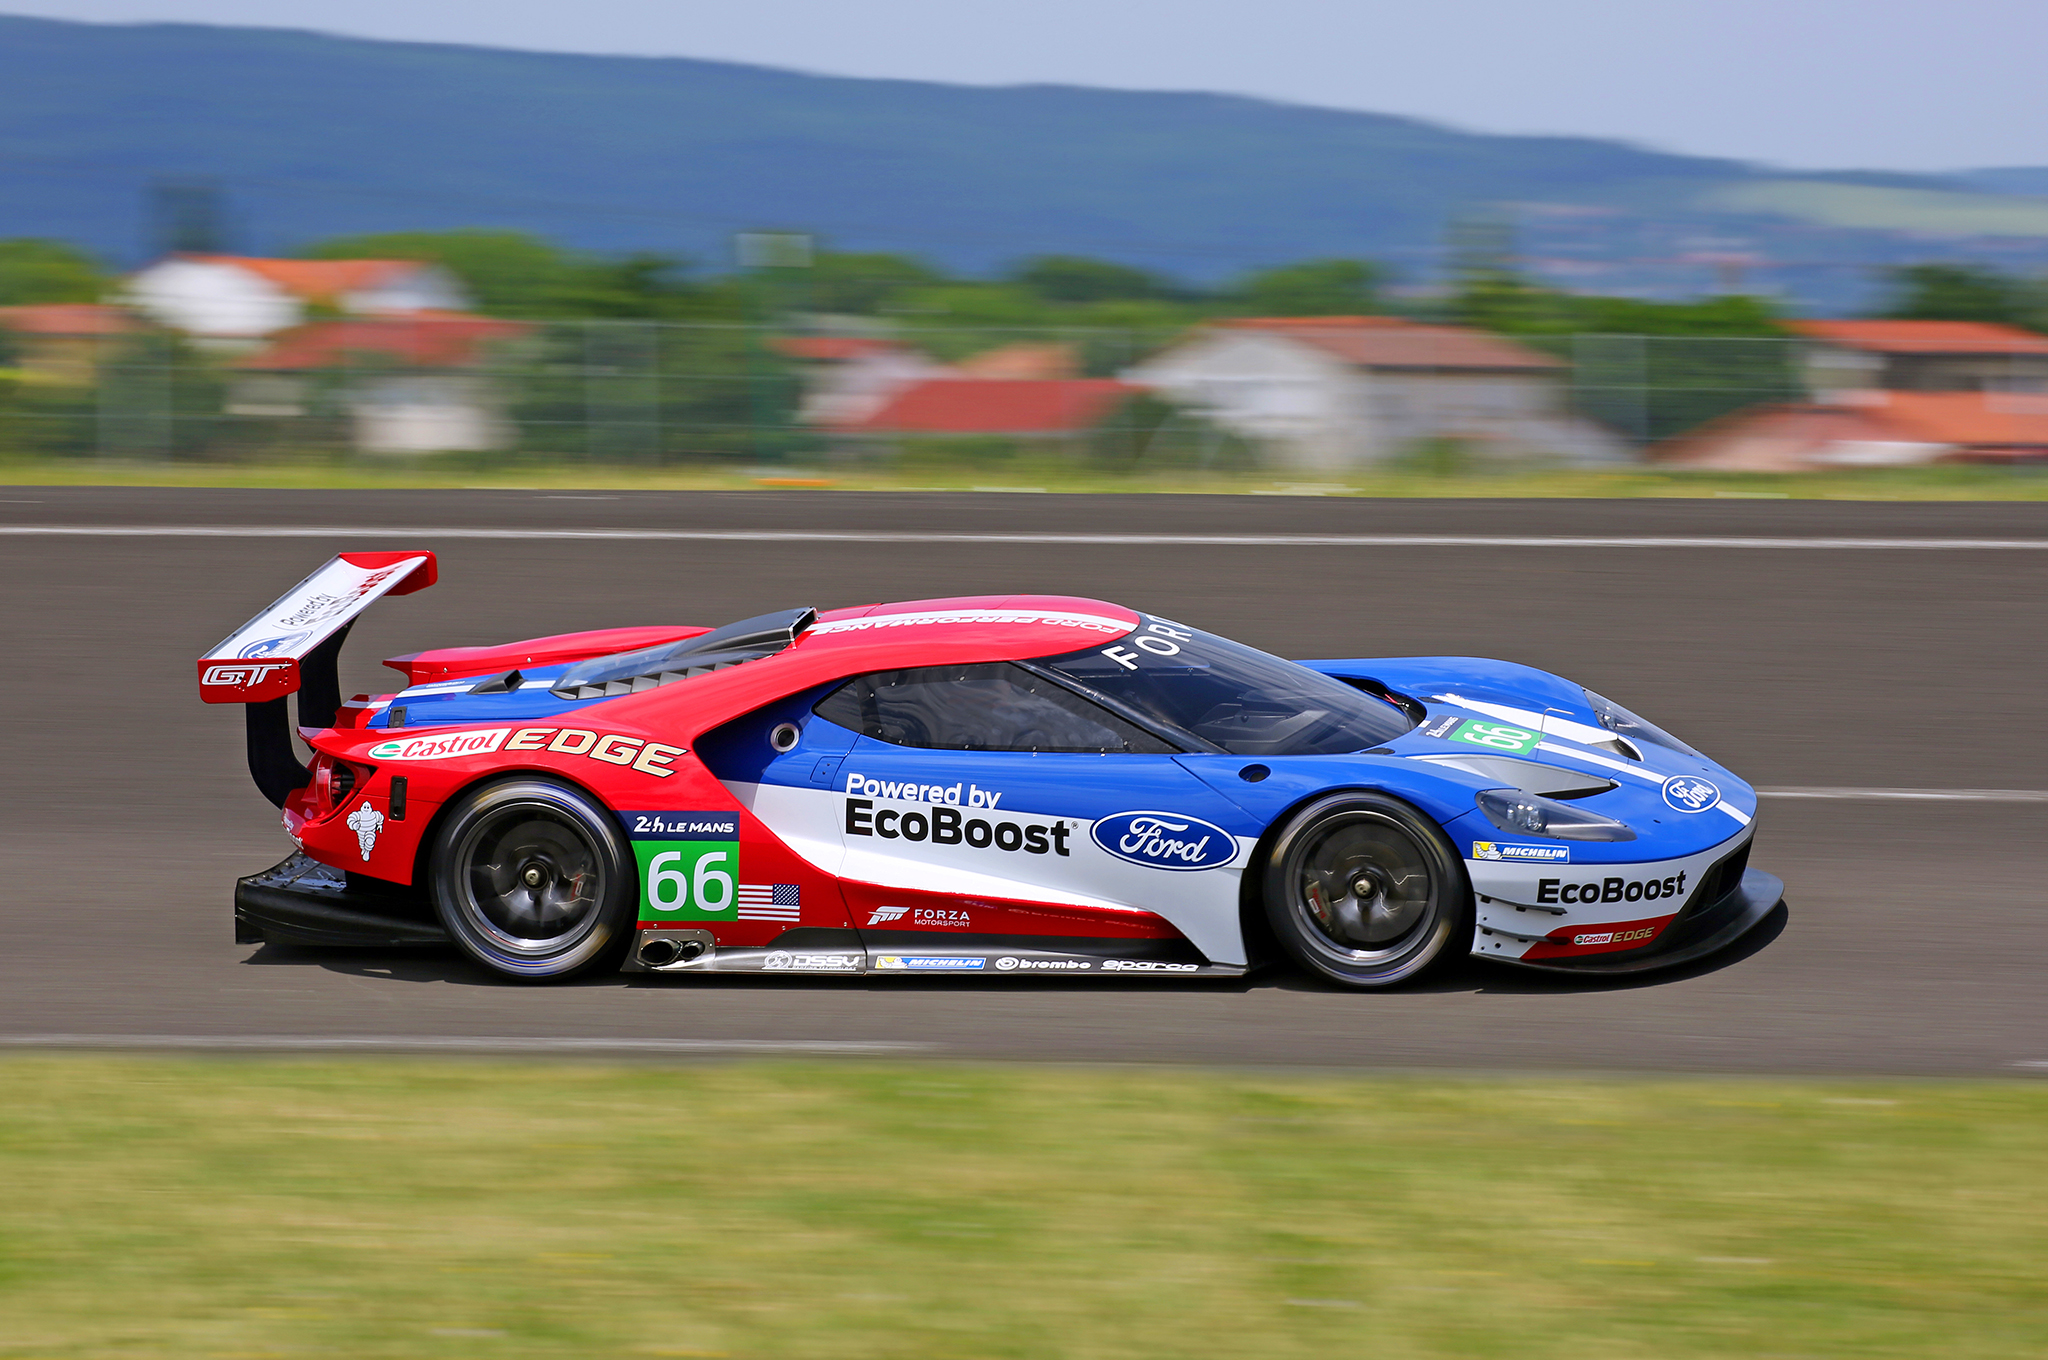 Stunning ford gt race car ushers in fords return to le mans